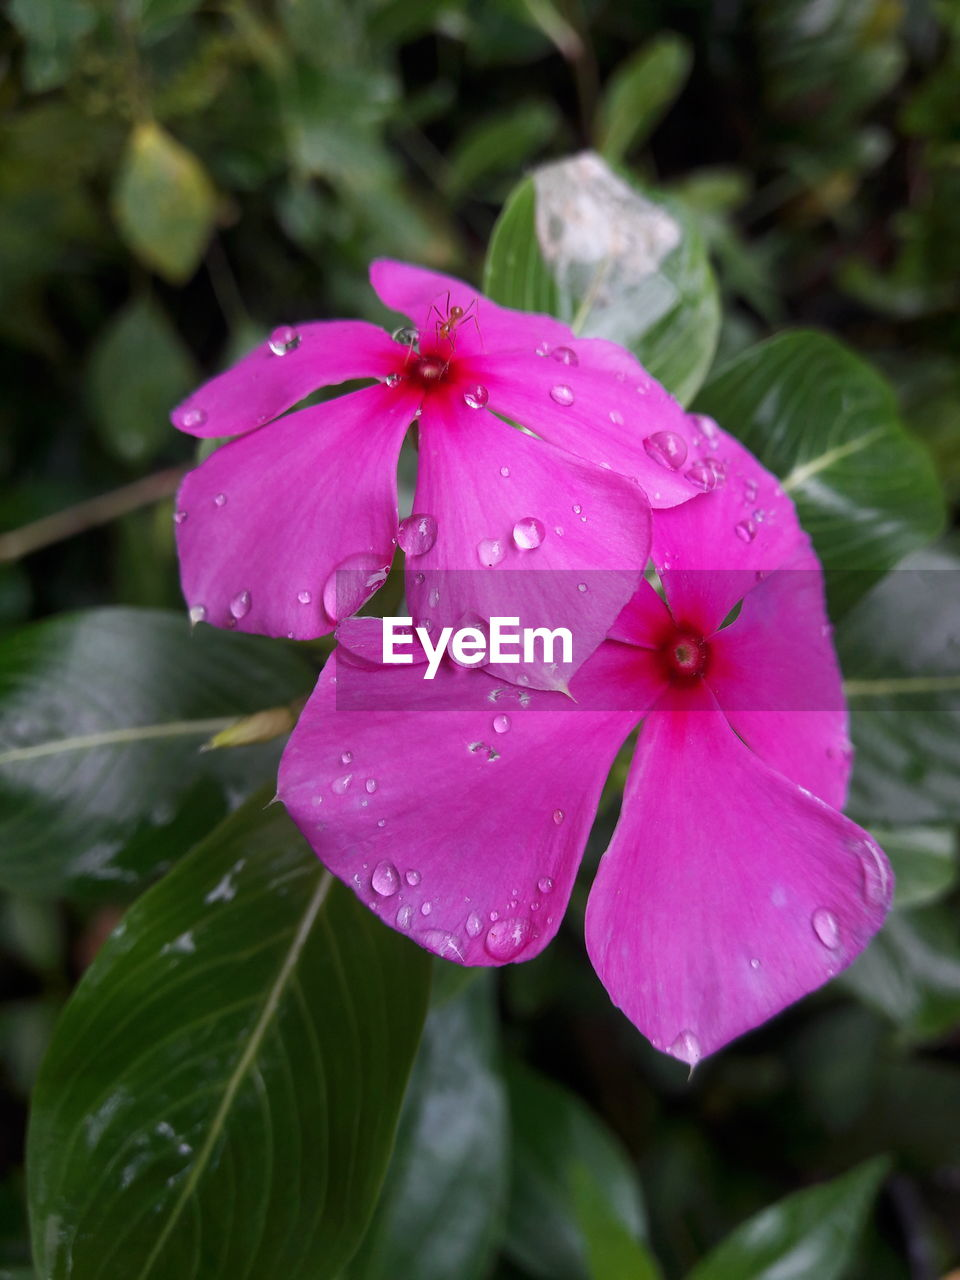 flower, petal, pink color, flower head, fragility, drop, growth, wet, periwinkle, water, day, beauty in nature, nature, blooming, close-up, no people, outdoors, freshness, petunia